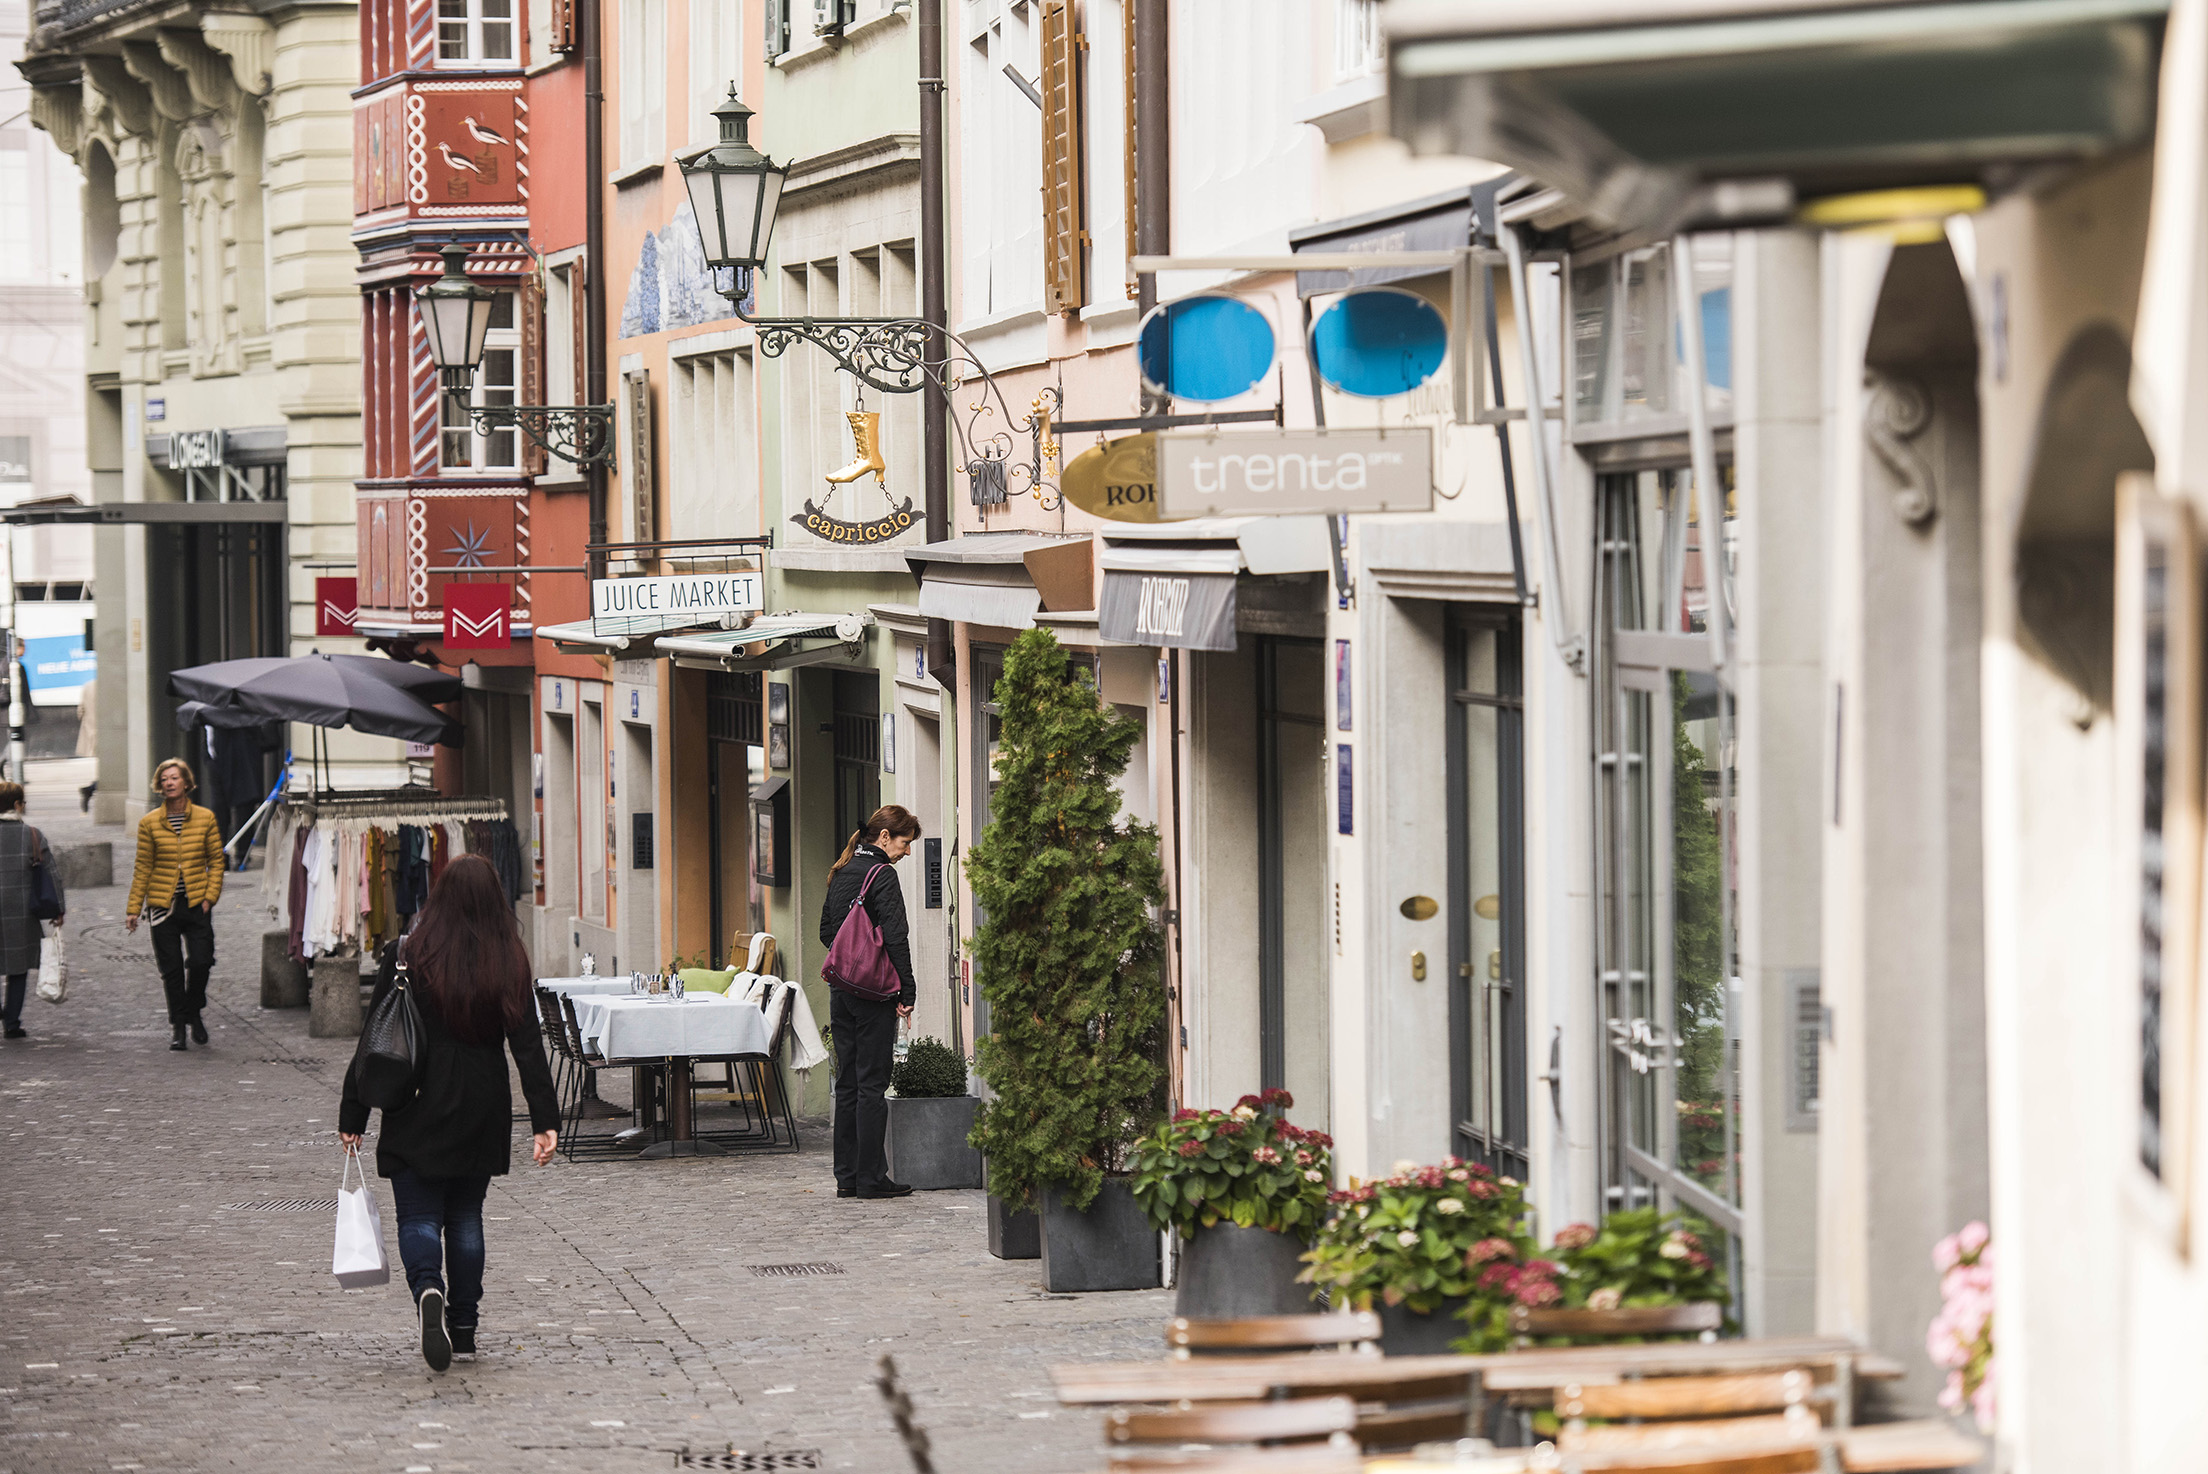 Shopping in the old town of Zurich